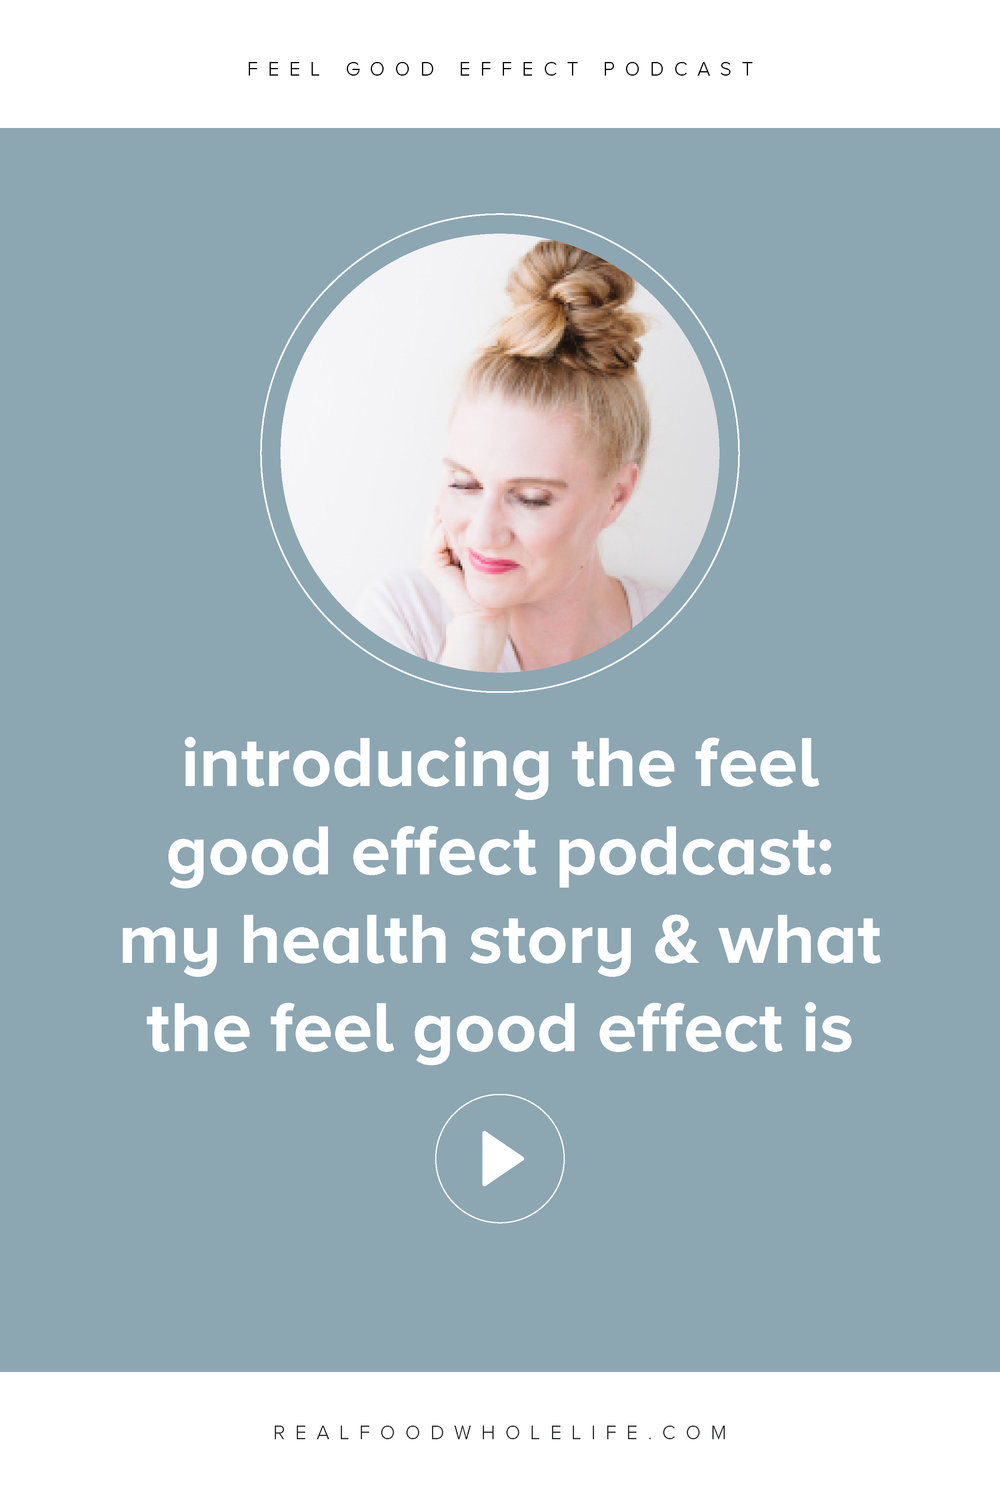 Introducing the Feel Good Effect Podcast